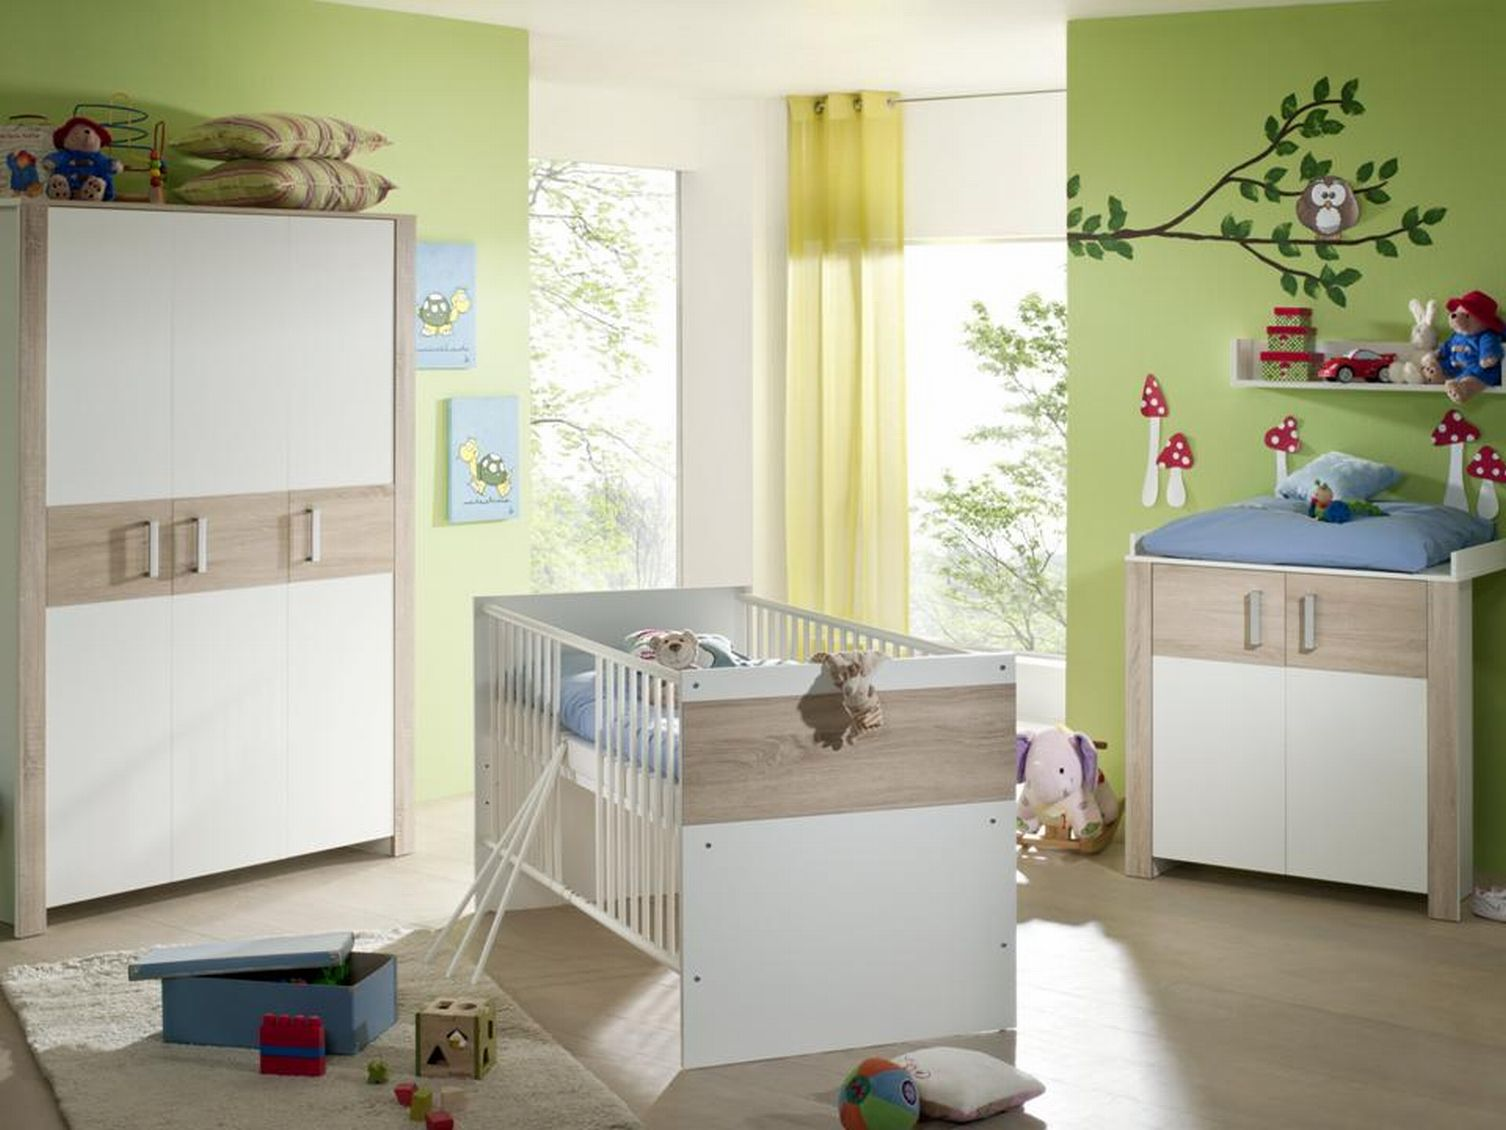 babyzimmer kinderzimmer zwillingszimmer zwillingsbett neu. Black Bedroom Furniture Sets. Home Design Ideas